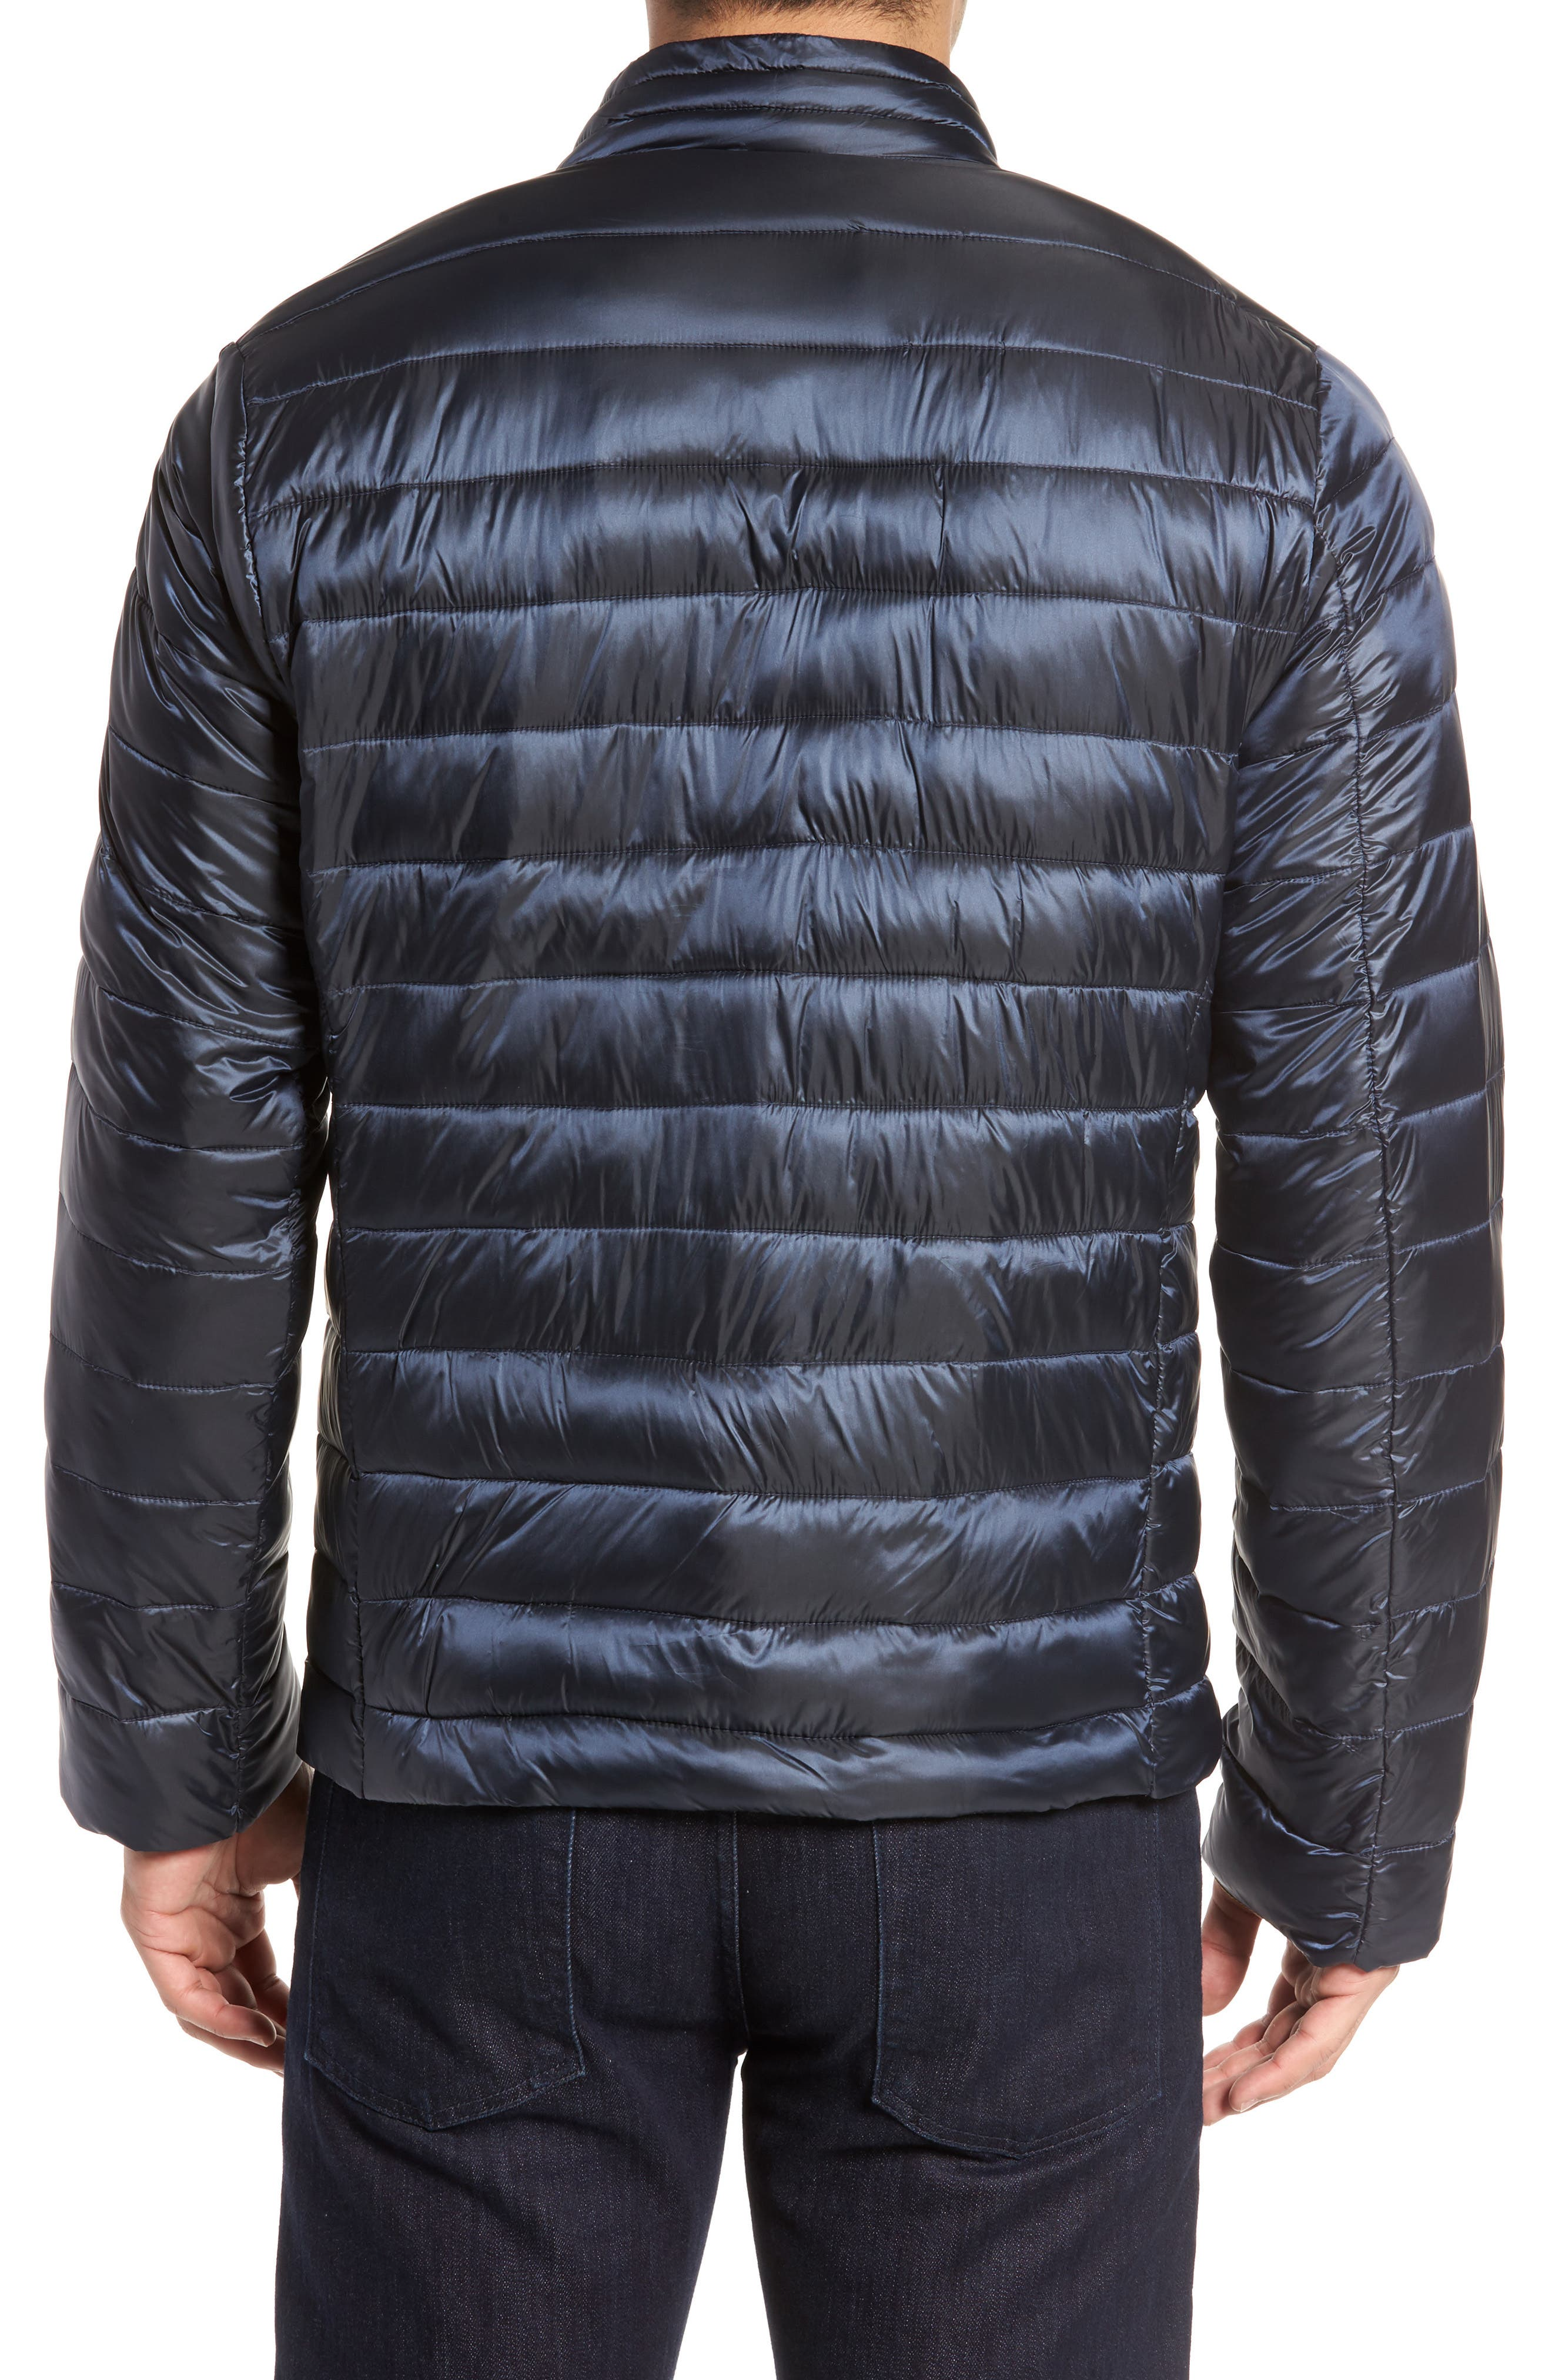 Channel Quilted Jacket,                             Alternate thumbnail 2, color,                             411